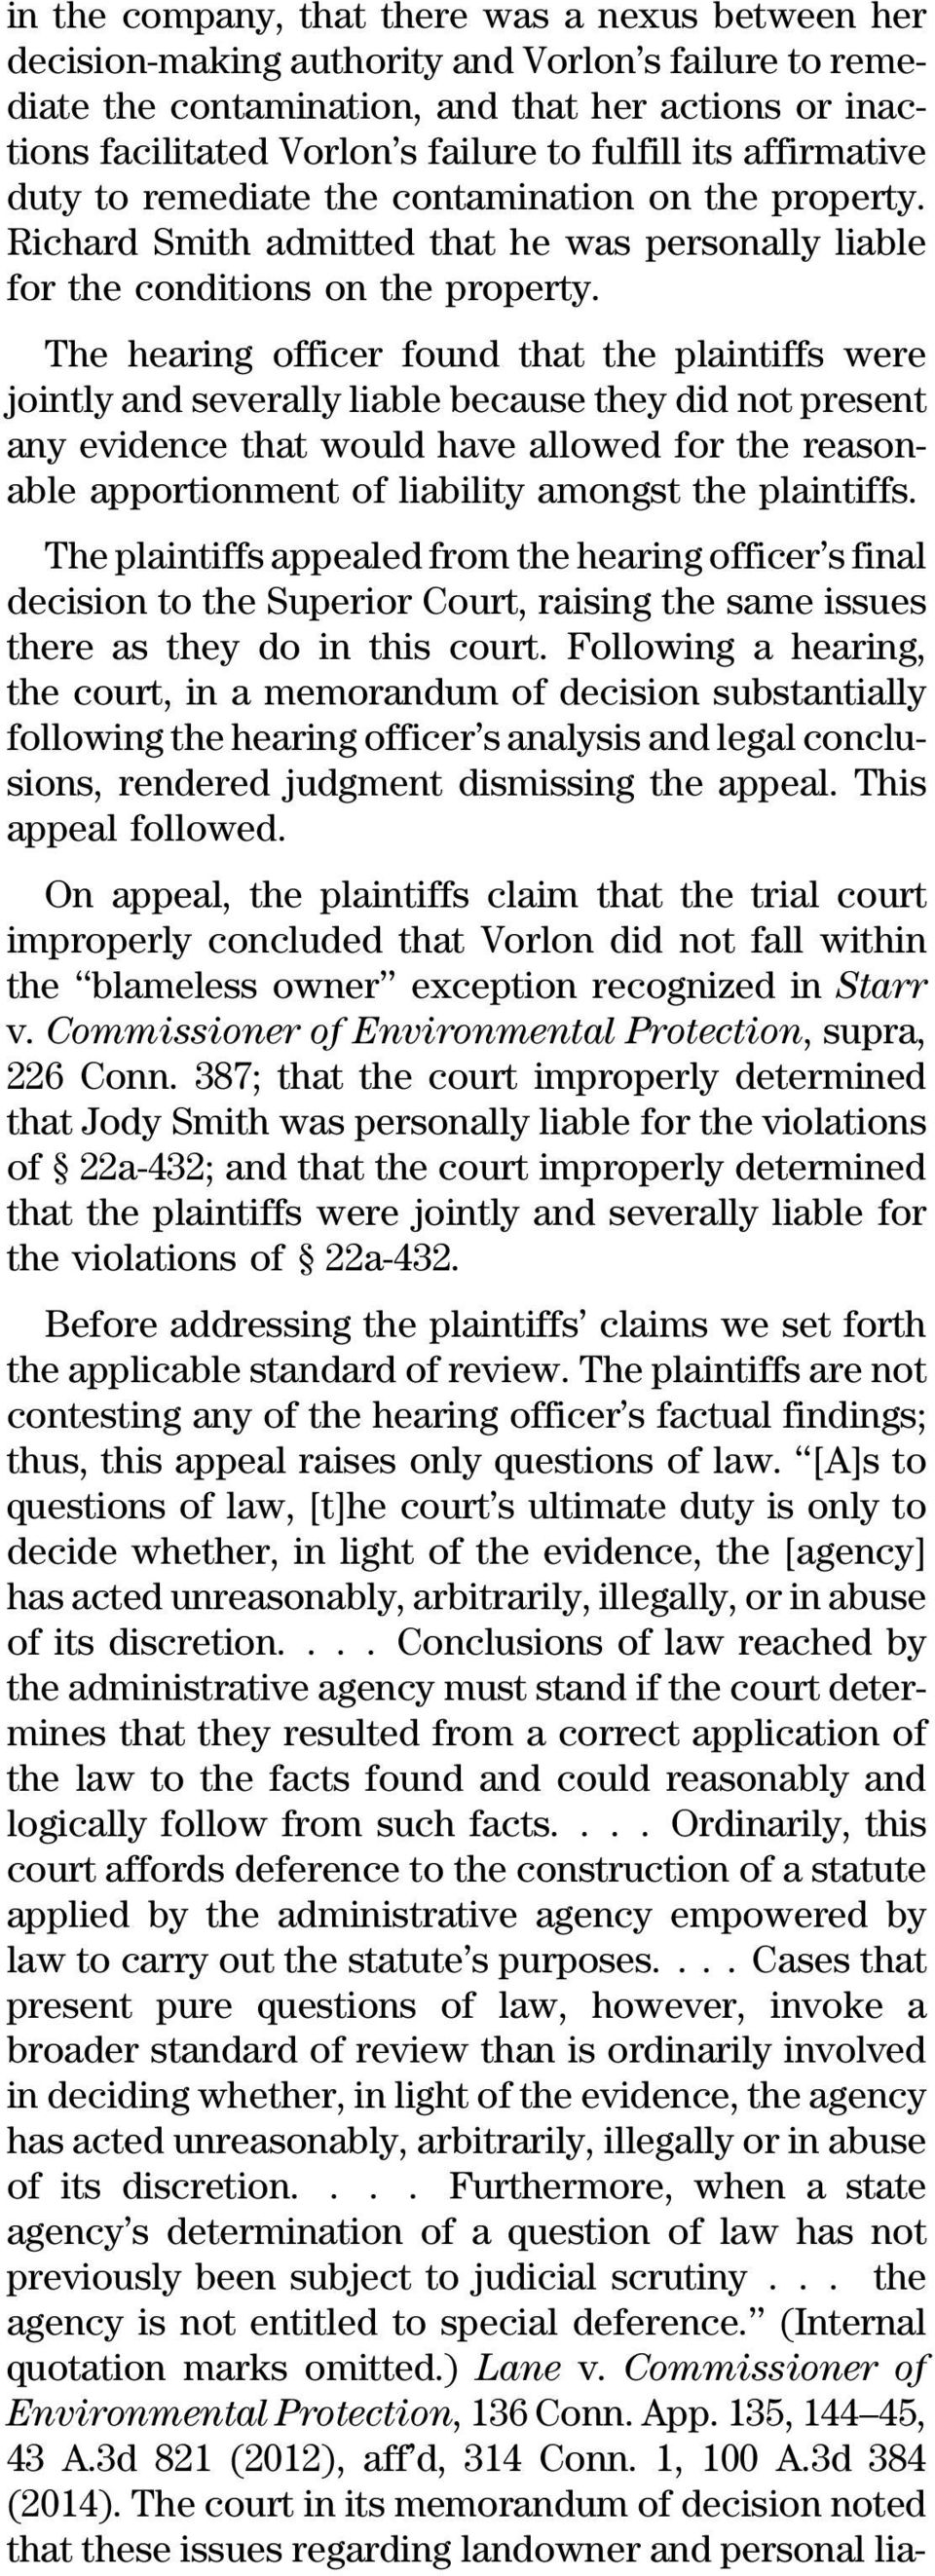 The hearing officer found that the plaintiffs were jointly and severally liable because they did not present any evidence that would have allowed for the reasonable apportionment of liability amongst